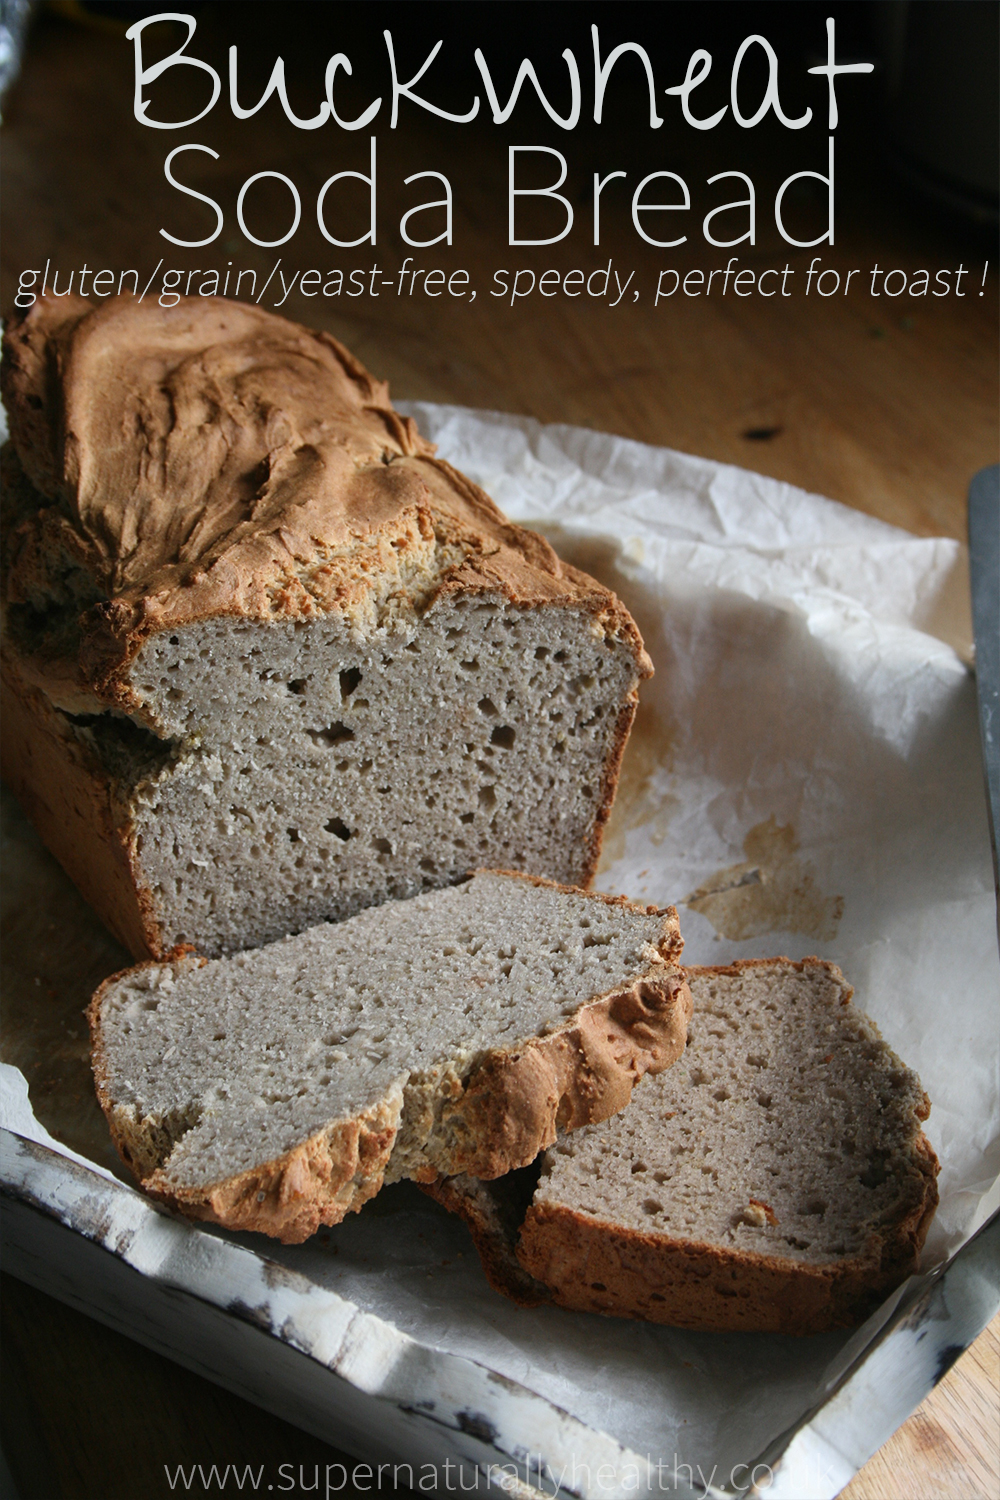 buckwheat-soda-bread-gluten-grain-free